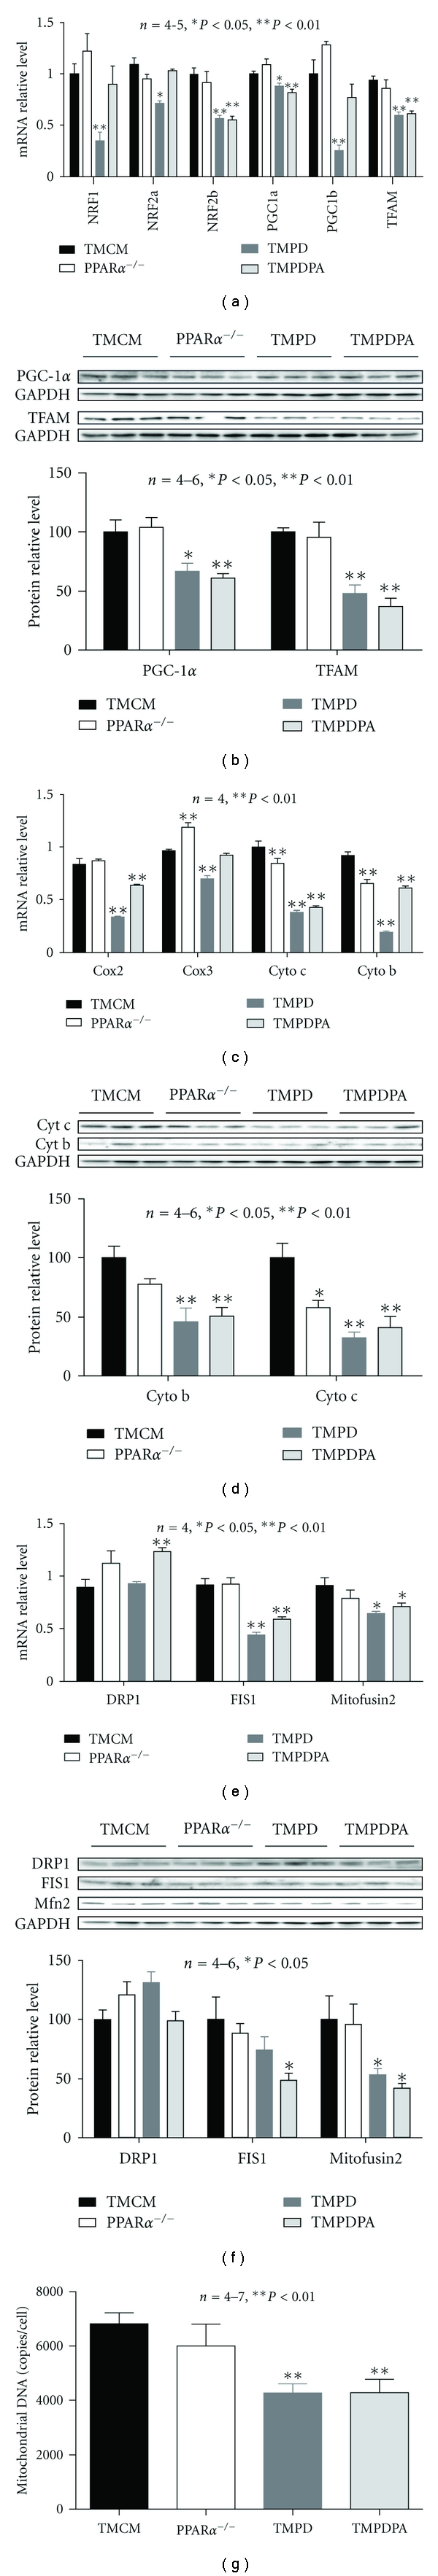 Expression of key determinants of mitochondrial biogenesis and mitochondrial proteins. (a) Real-time PCR measurement of transcript levels of NRF-1, NRF2 (a and b subunits), <t>PGC-1</t> α and -1 β , and <t>TFAM</t> on samples from TMCM, PPAR α −/− , TMPD, and TMPDPA hearts. (b) Western blotting analyses of relative protein levels of PGC-1 α and TFAM on samples of nuclear proteins extracted from ventricular tissues of TMCM, PPAR α −/− , TMPD, and TMPDPA mice. (c) Transcript expression of mitochondrial proteins on samples from TMCM, PPAR α −/− , TMPD, and TMPDPA hearts. (d) Protein expression of mitochondrial proteins on samples from TMCM, PPAR α −/− , TMPD, and TMPDPA hearts. (e) Transcript expression of mitochondrial fission and fusion proteins on samples from TMCM, PPAR α −/|− , TMPD, and TMPDPA hearts. (f) Protein expression of mitochondrial fission and fusion proteins on samples from TMCM, PPAR α −/− , TMPD, and TMPDPA hearts. (g) The mitochondrial DNA copy number on samples from TMCM, PPAR α −/− , TMPD, and TMPDPA hearts. * P